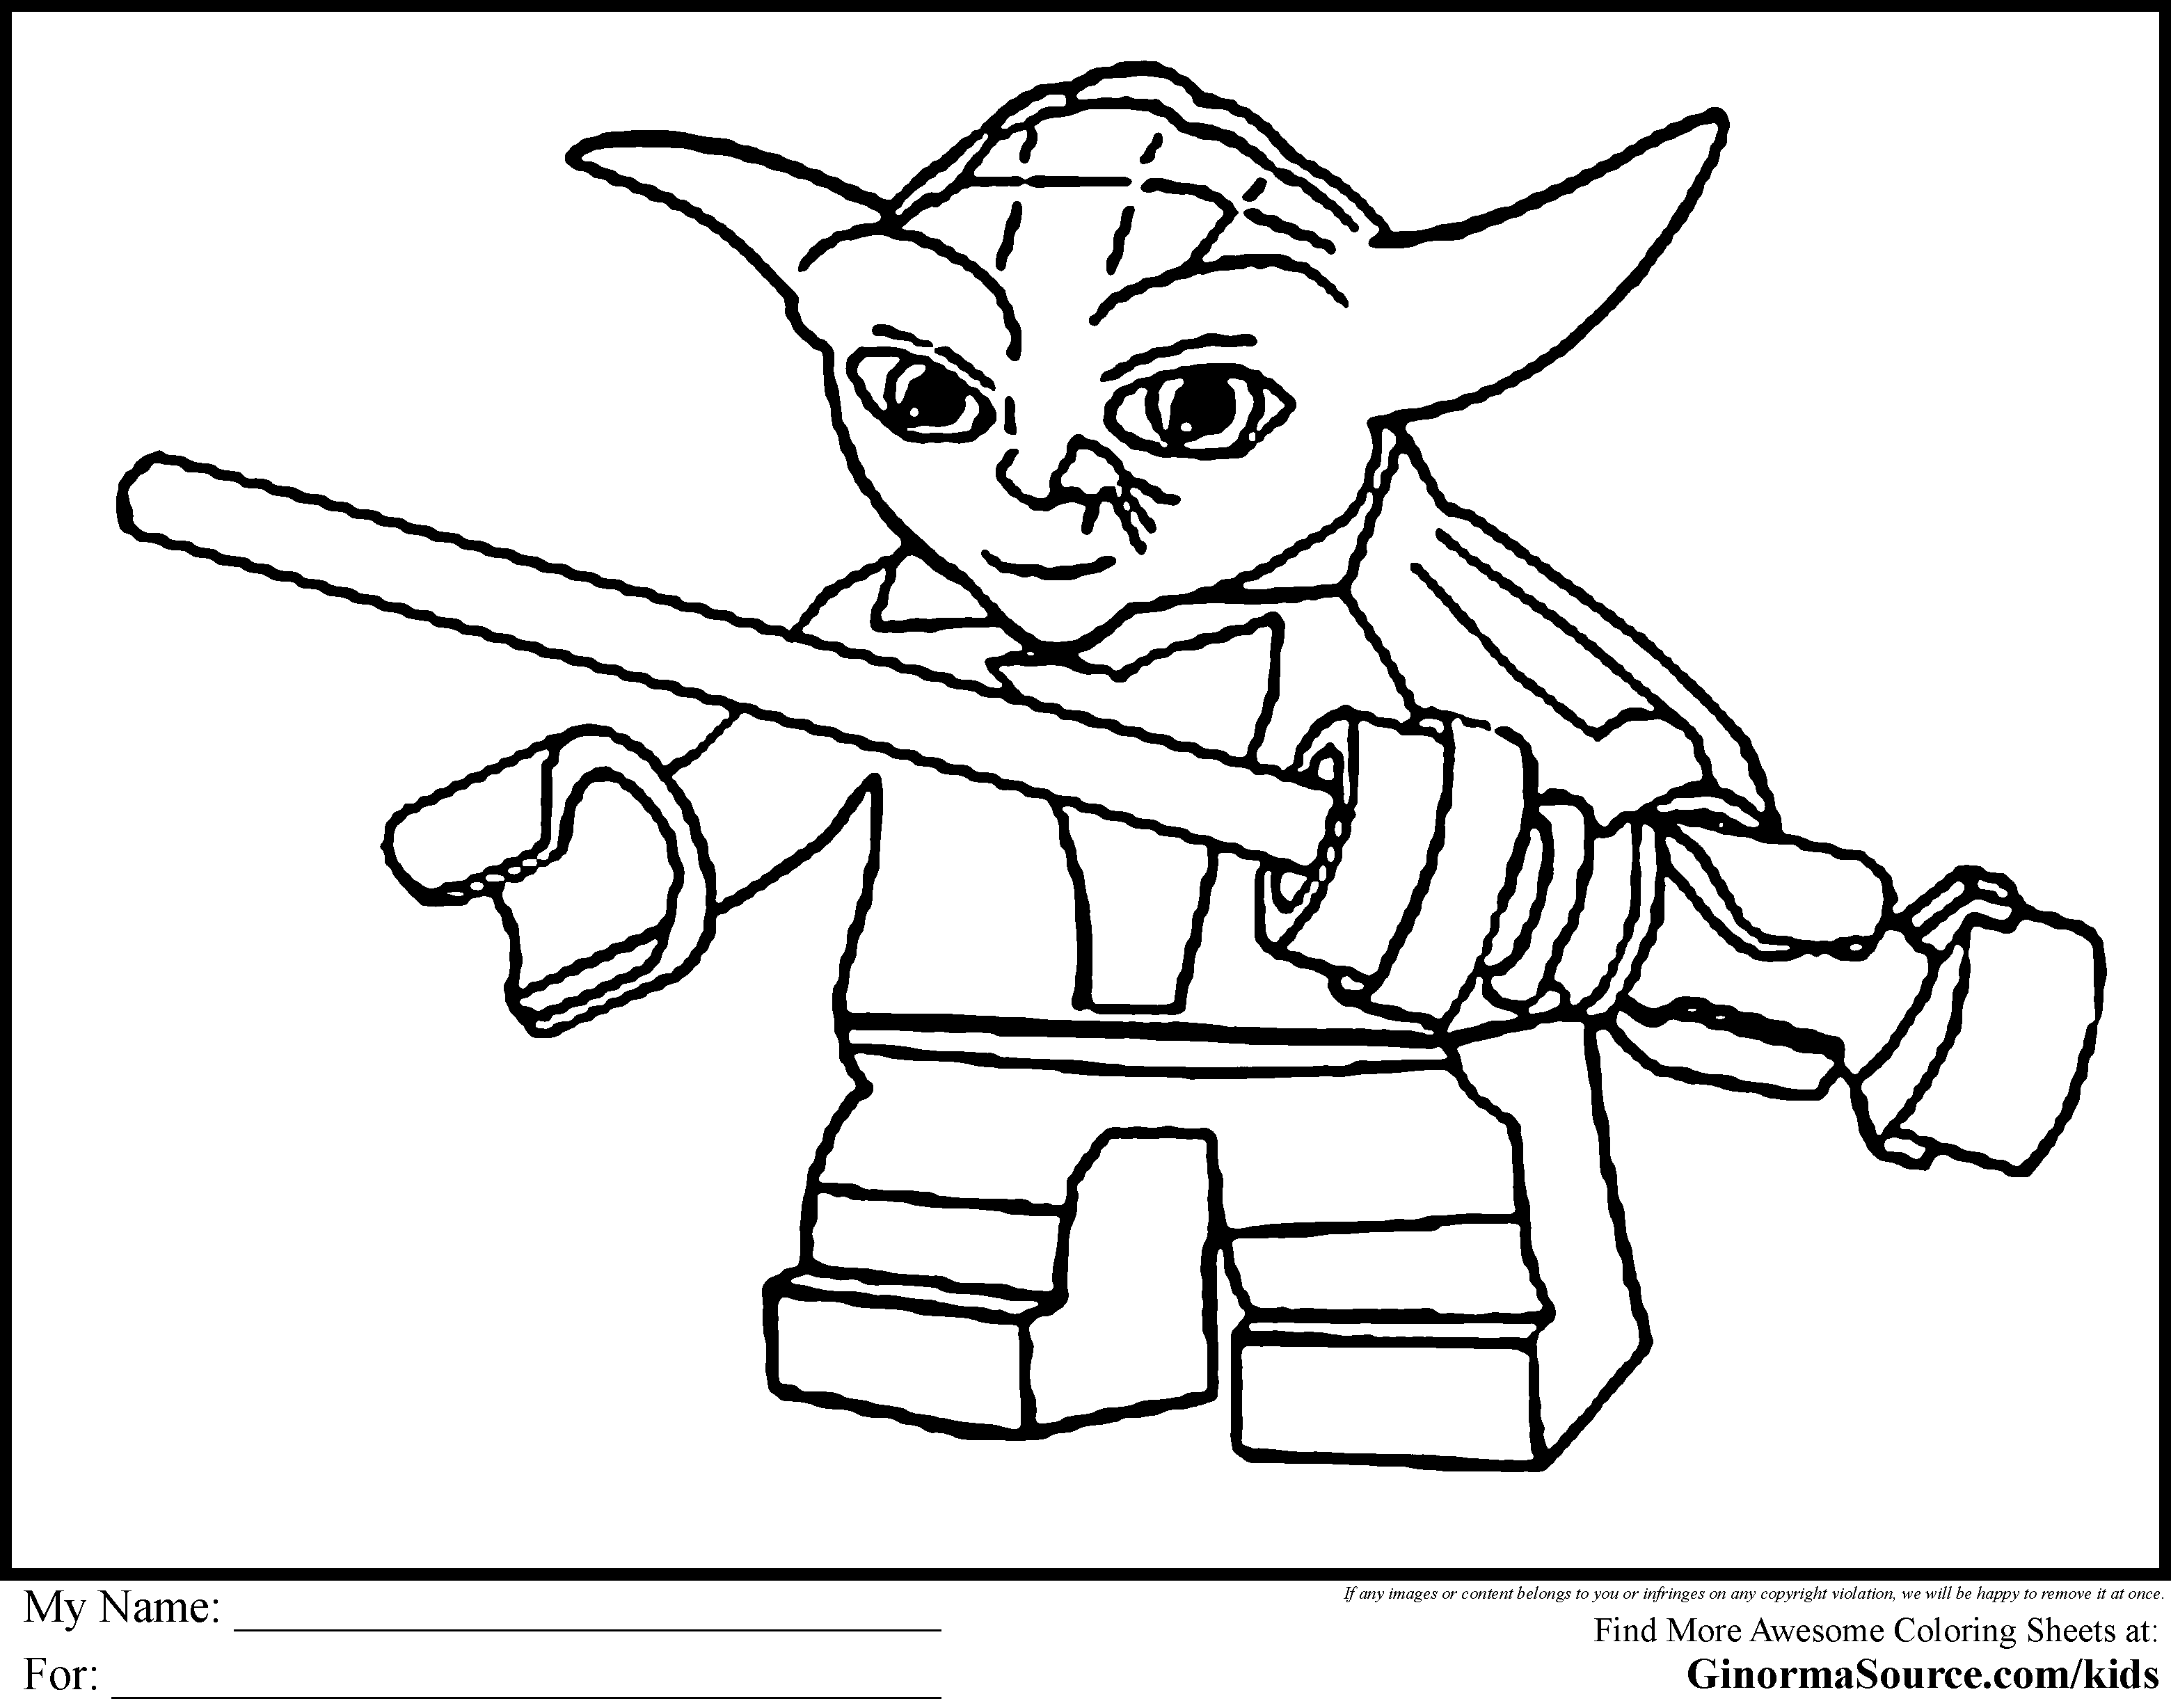 coloring pages printable star wars free printable star wars coloring pages free printable wars printable star coloring pages